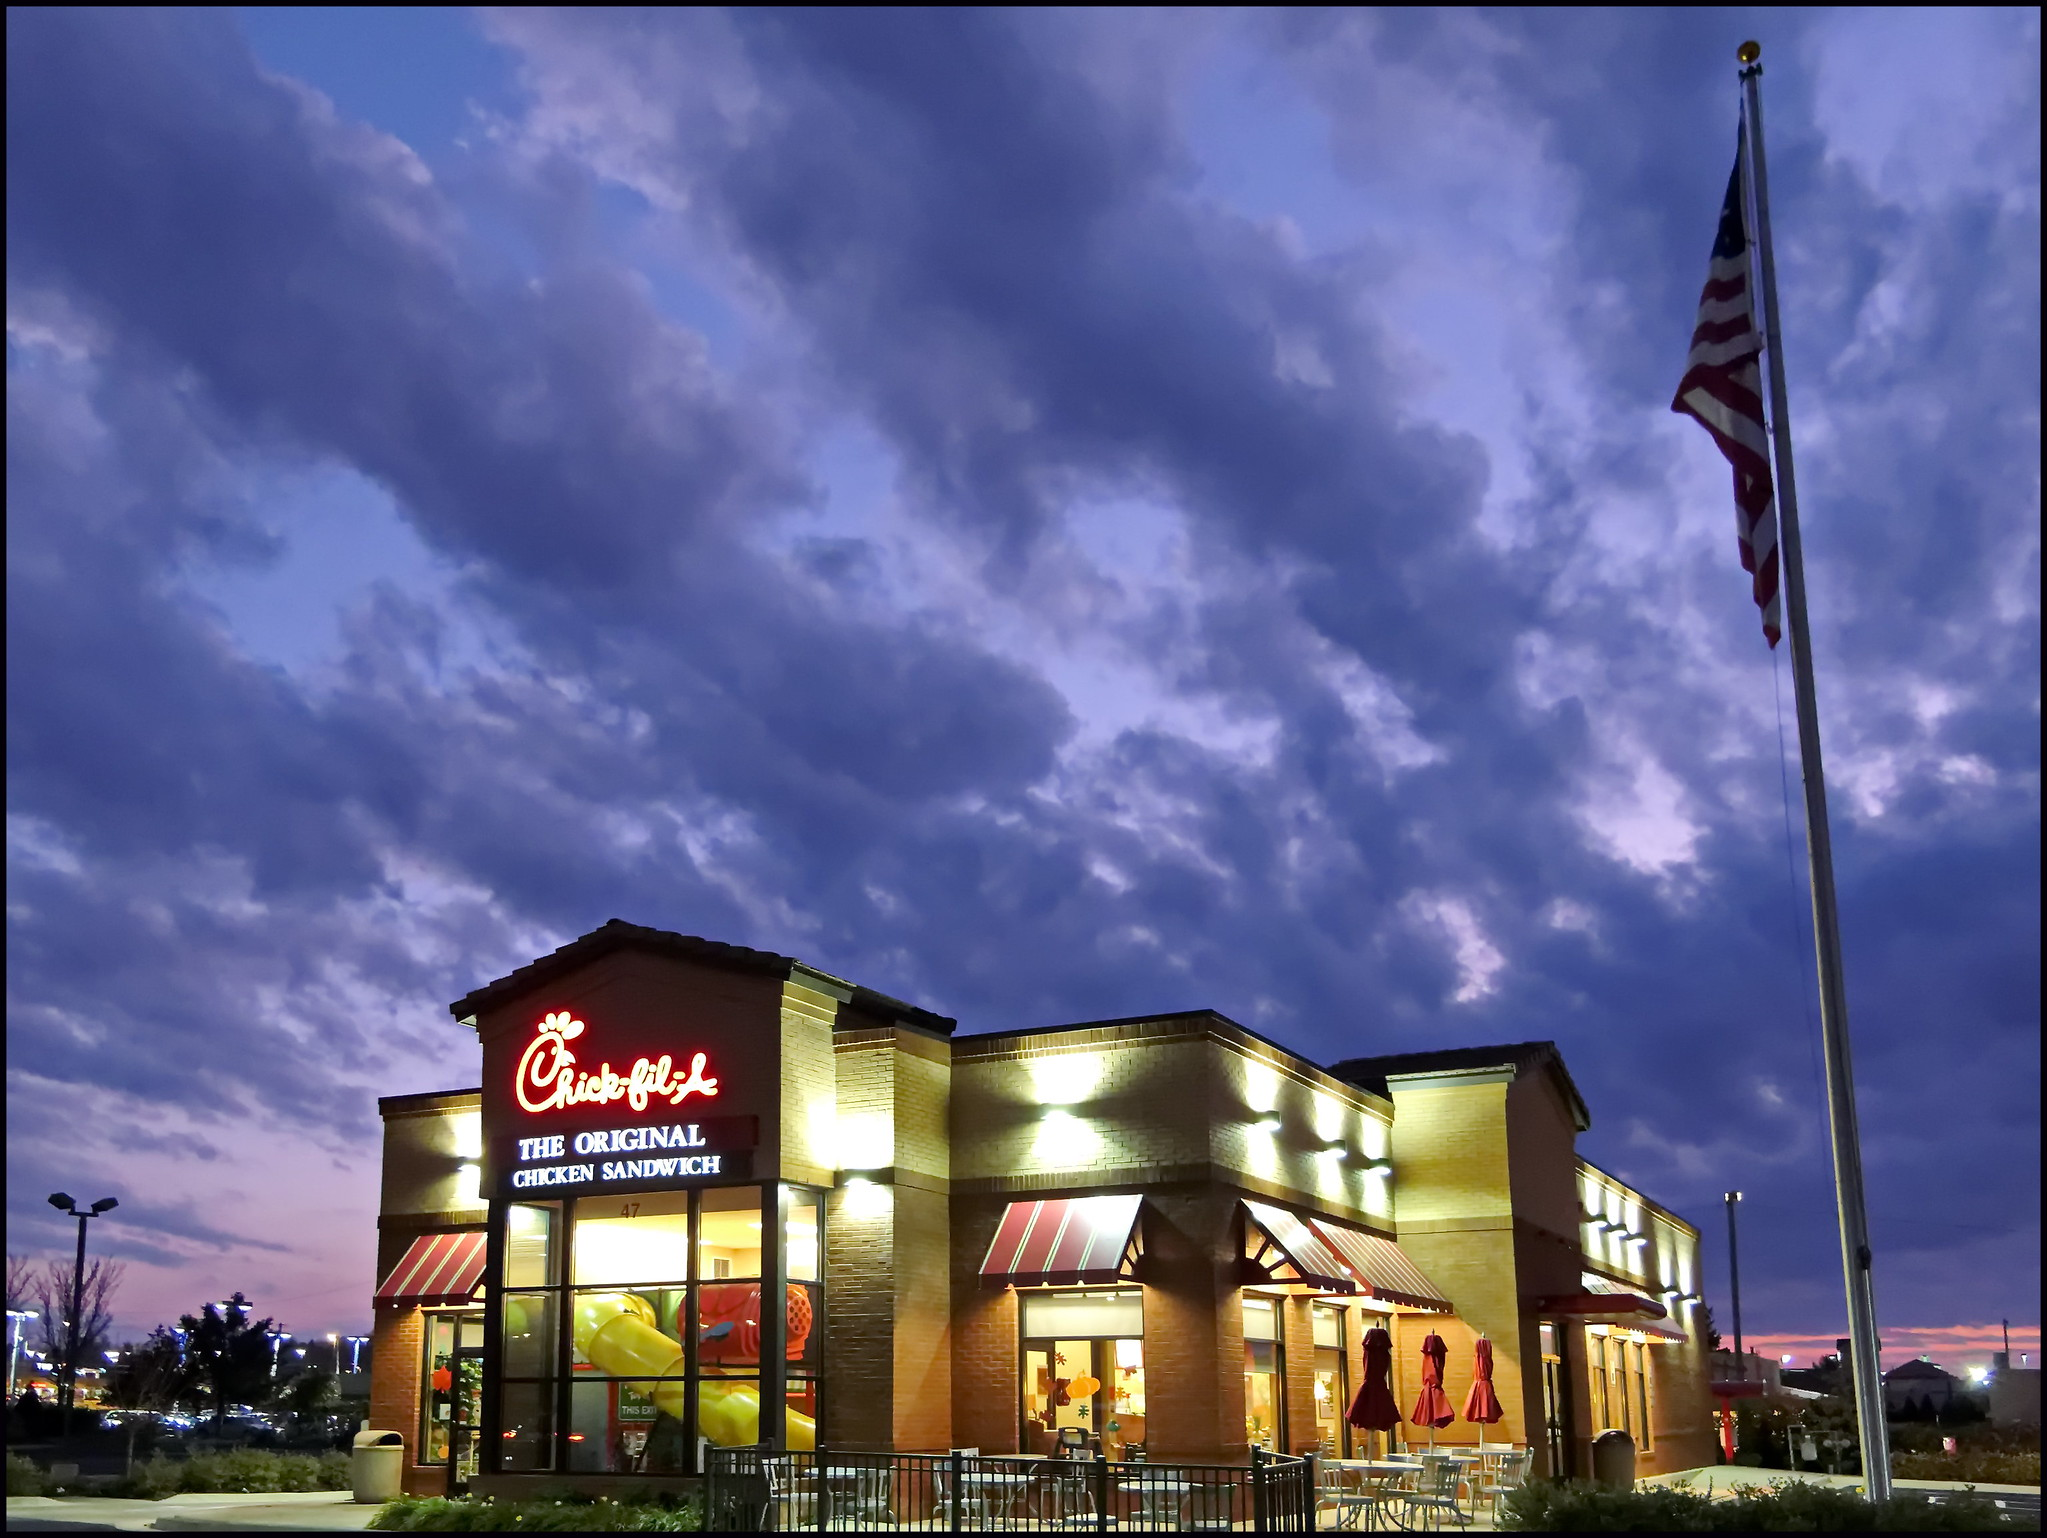 chick-fil-a outlet at night